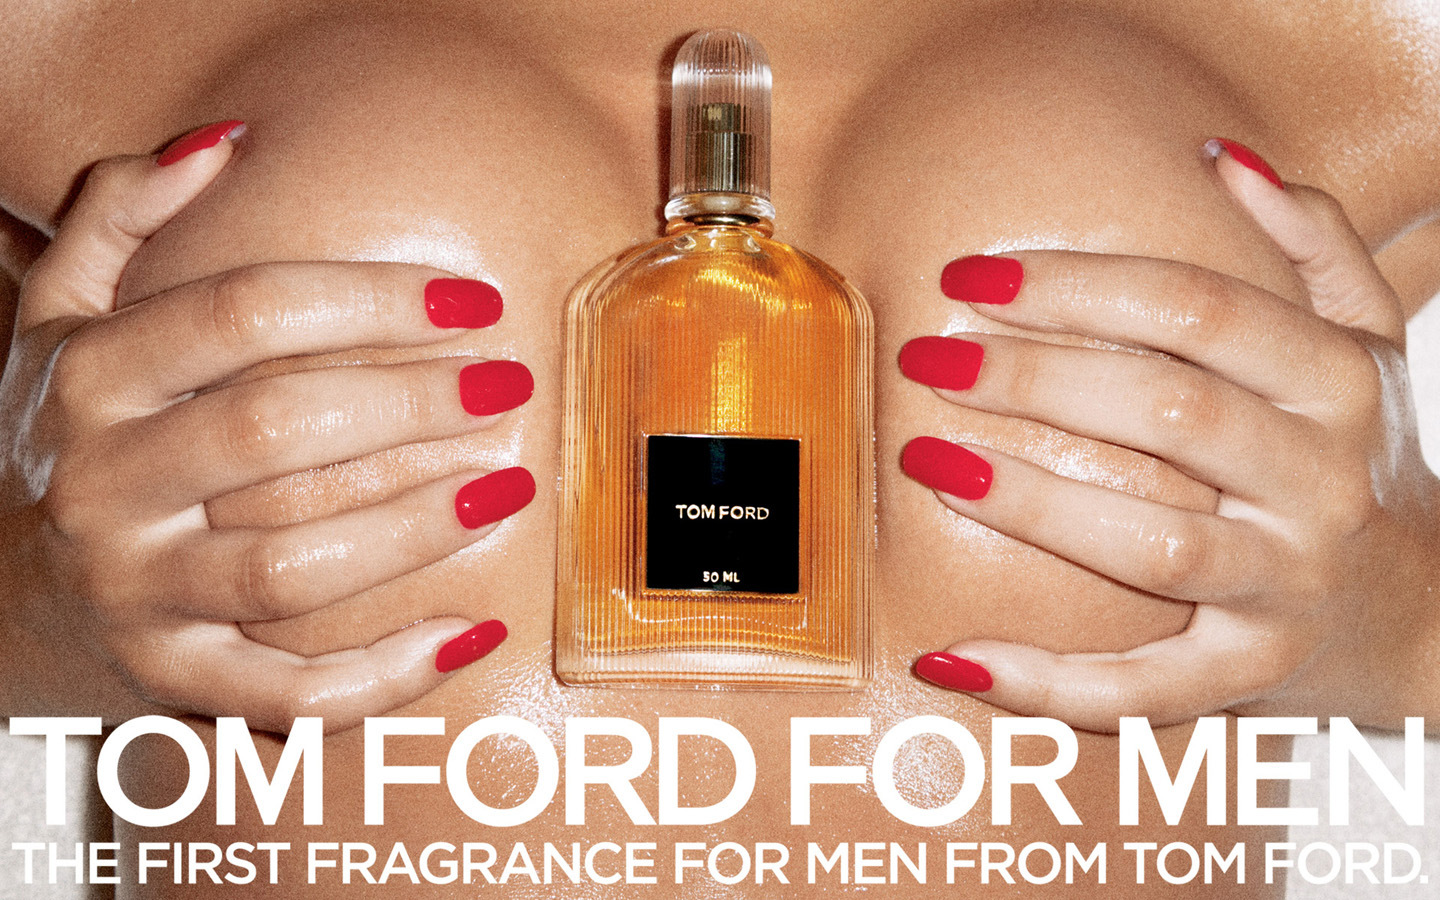 new-tom-ford-for-men-fashion-wallpaper